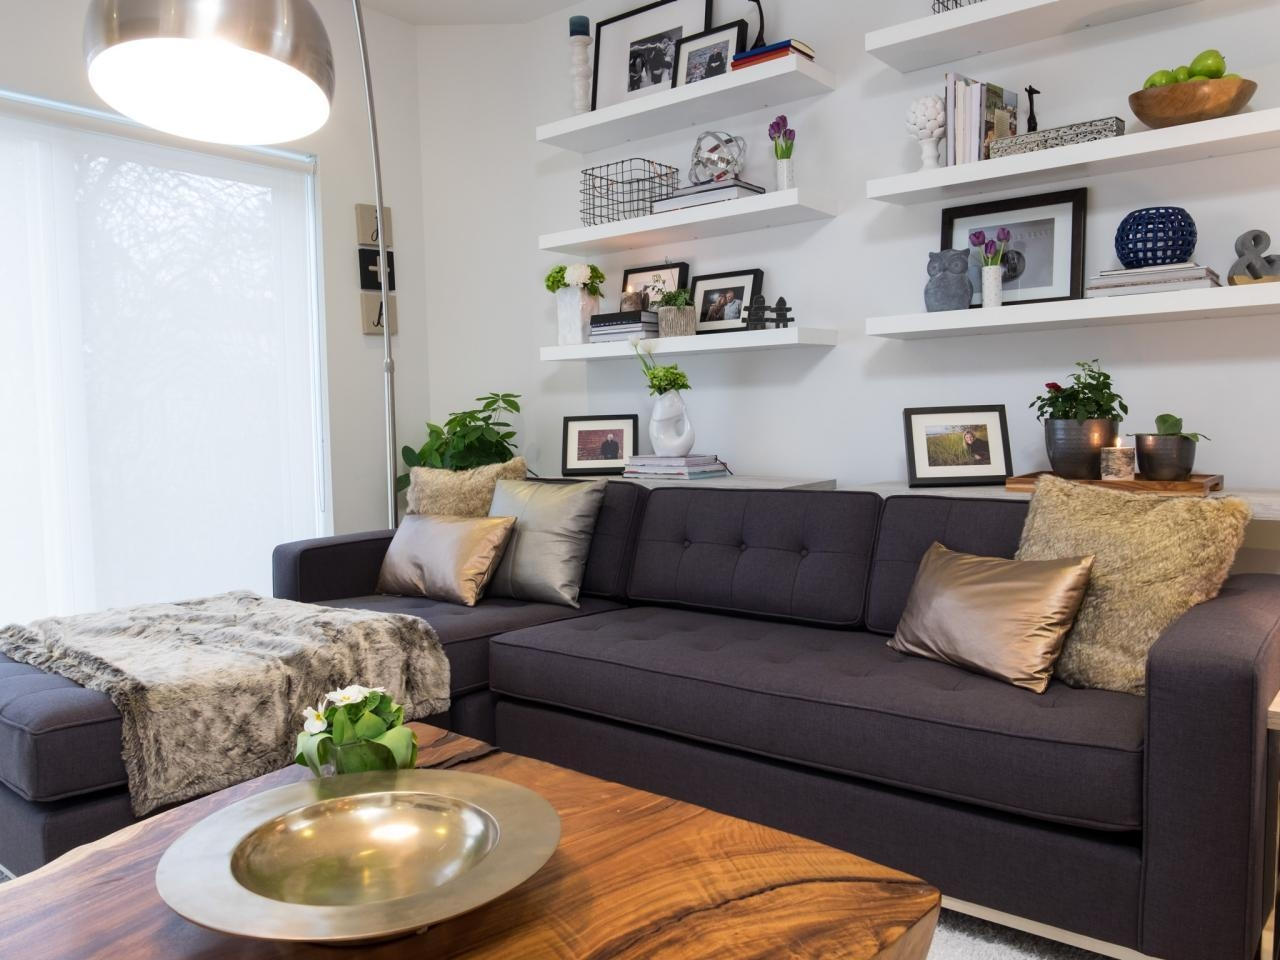 12 Living Room Ideas For A Grey Sectional | Hgtv's Decorating Within Decorating With A Sectional Sofa (View 7 of 15)